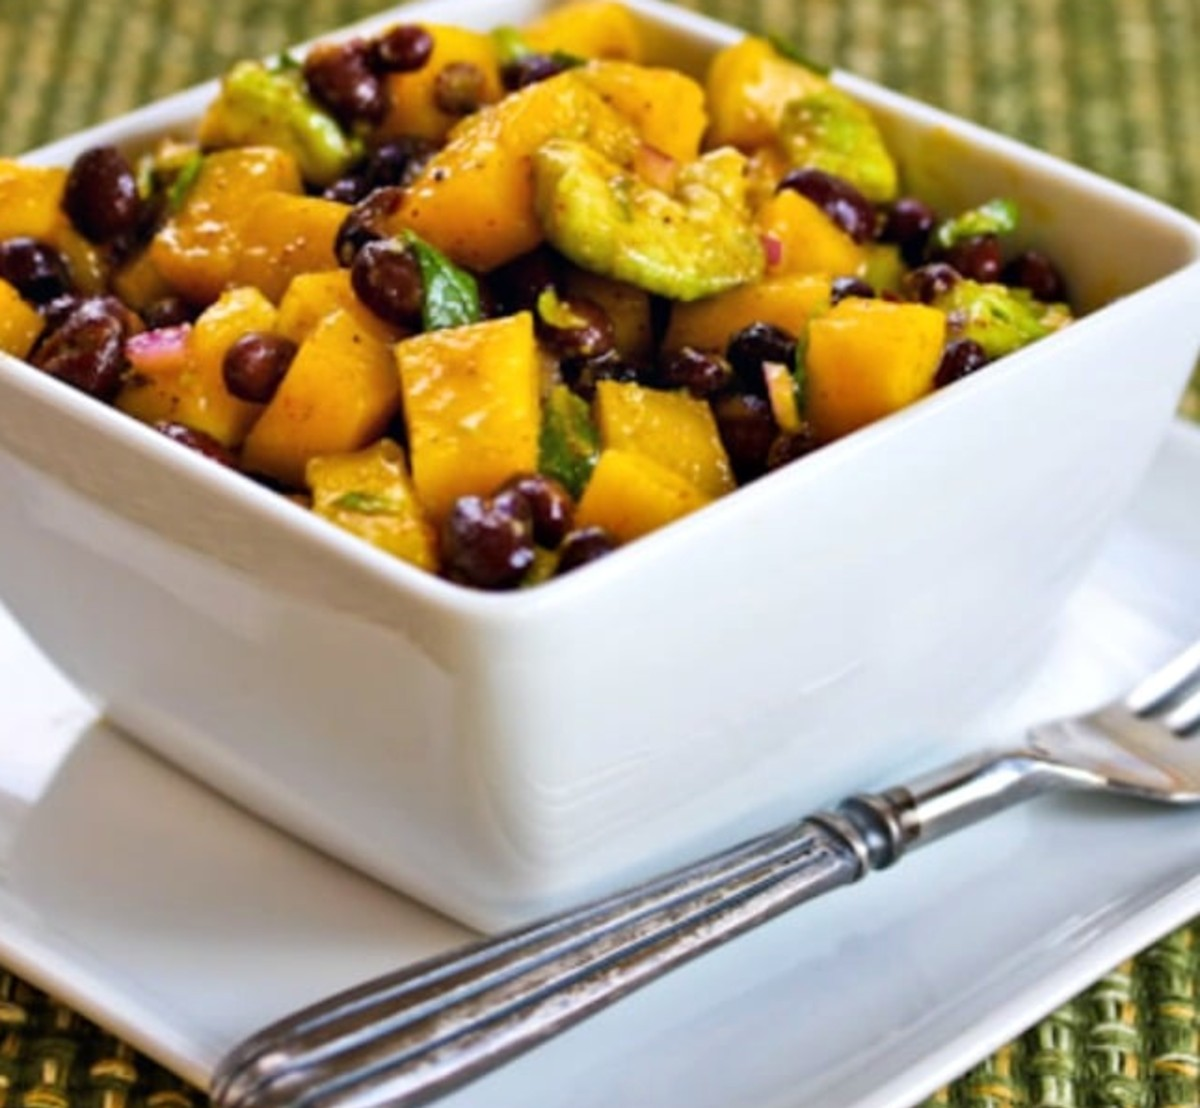 Mango salad with beans, avocado and mint